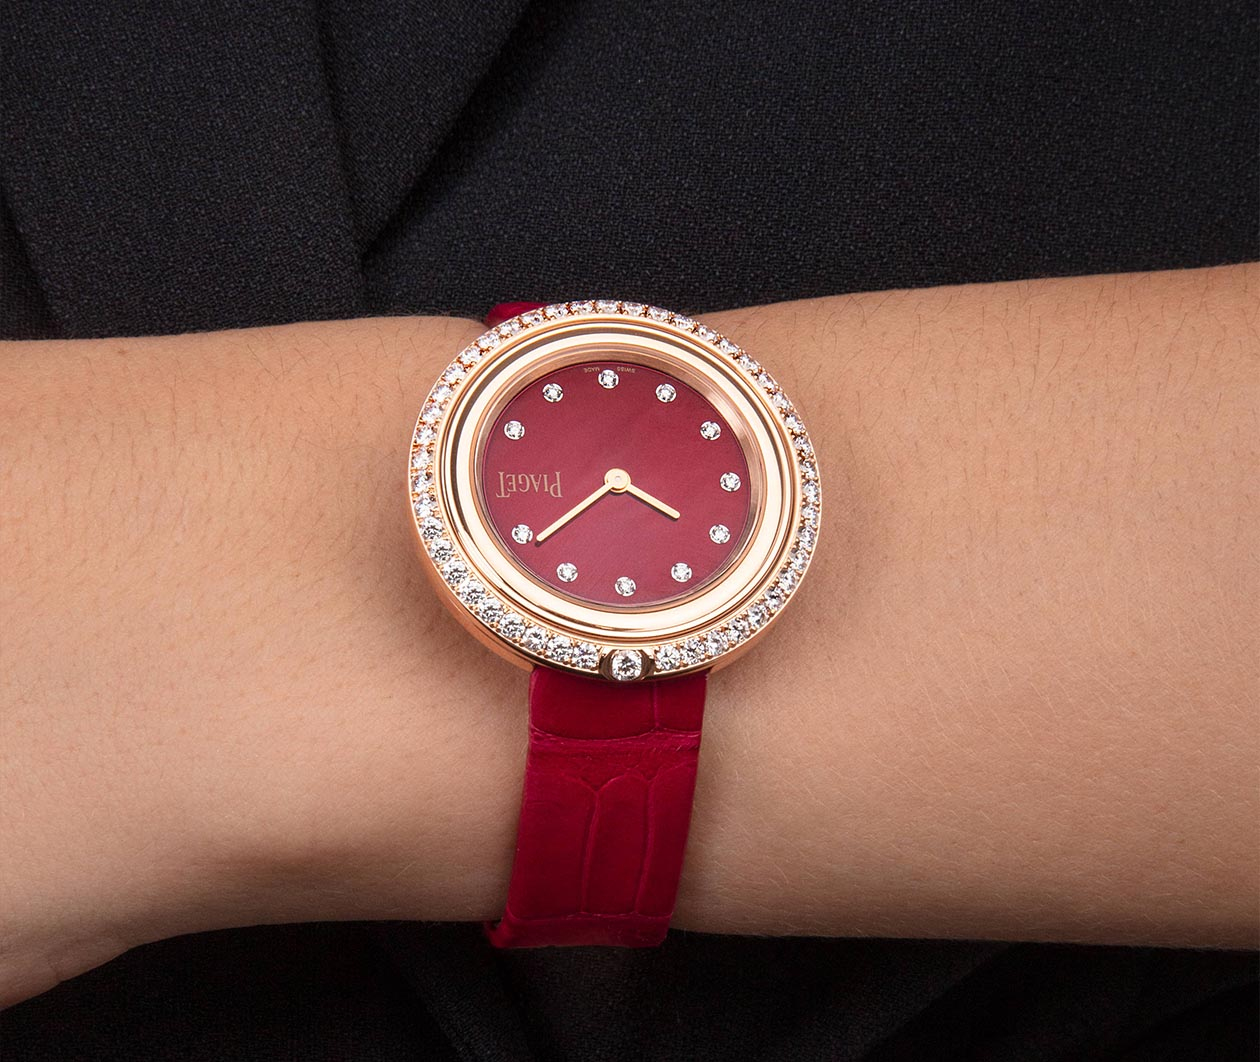 Piaget Possession watch G0A44086 Carousel 2 FINAL